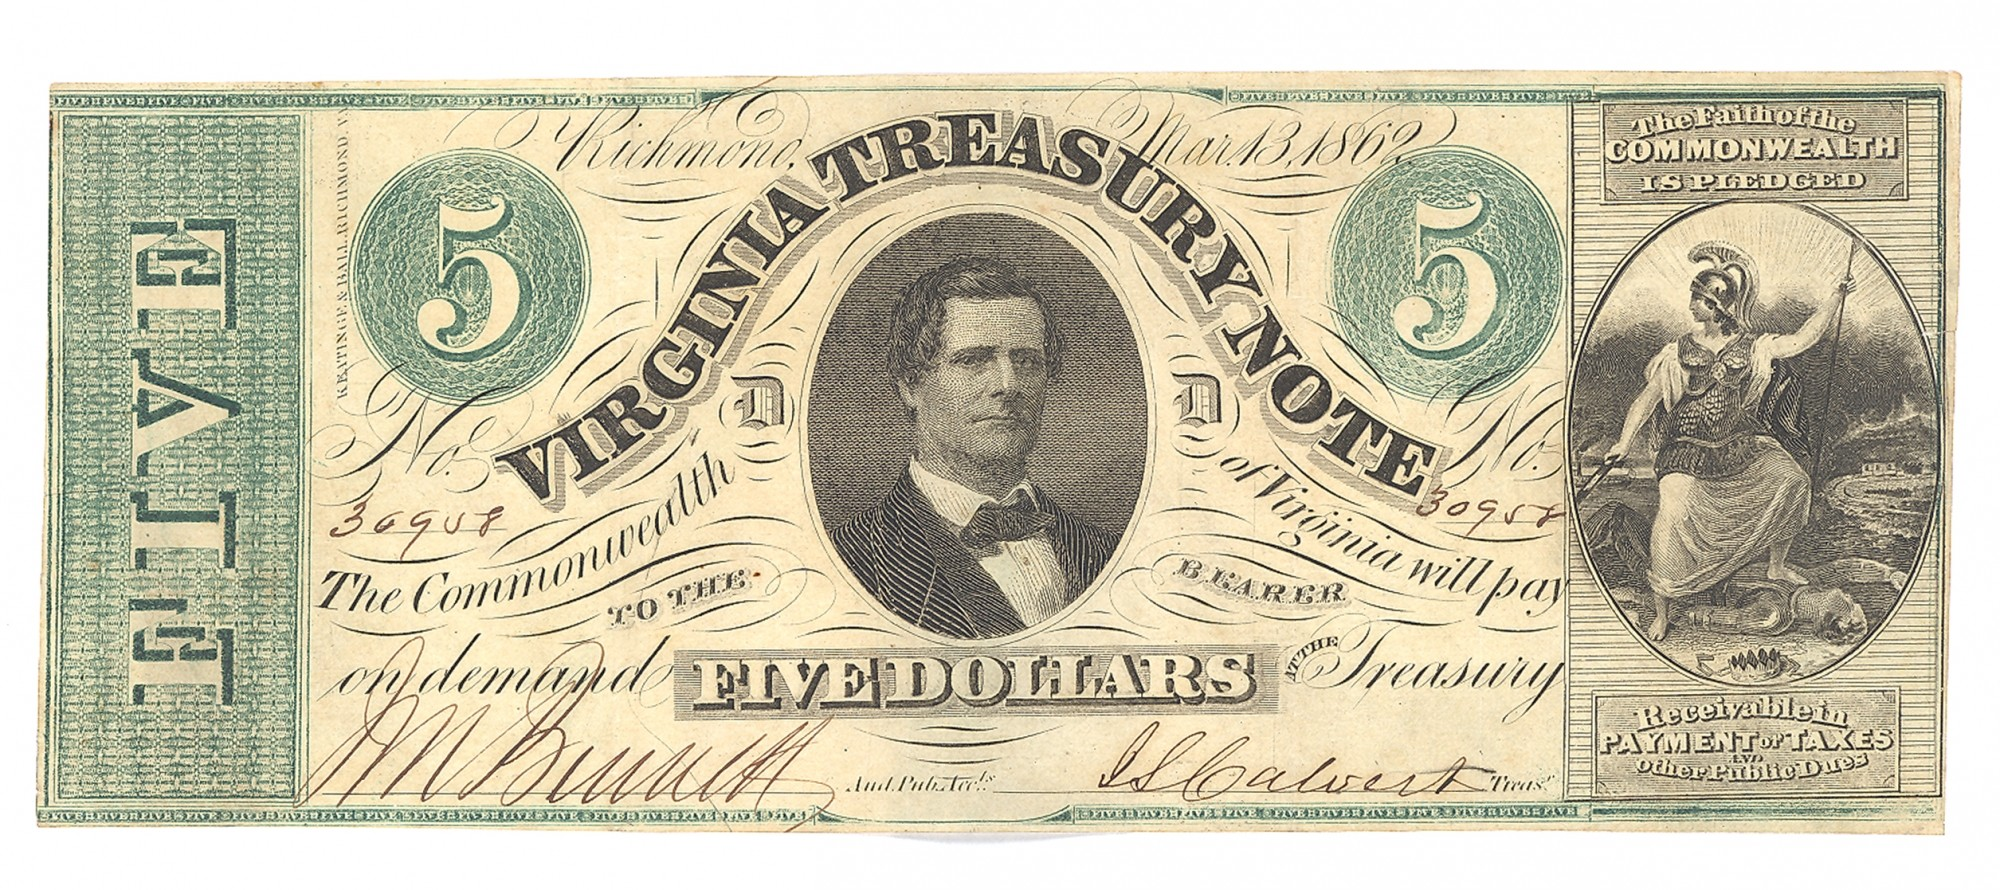 VIRGINIA TREASURY NOTE, RICHMOND, VIRGINIA $5 NOTE